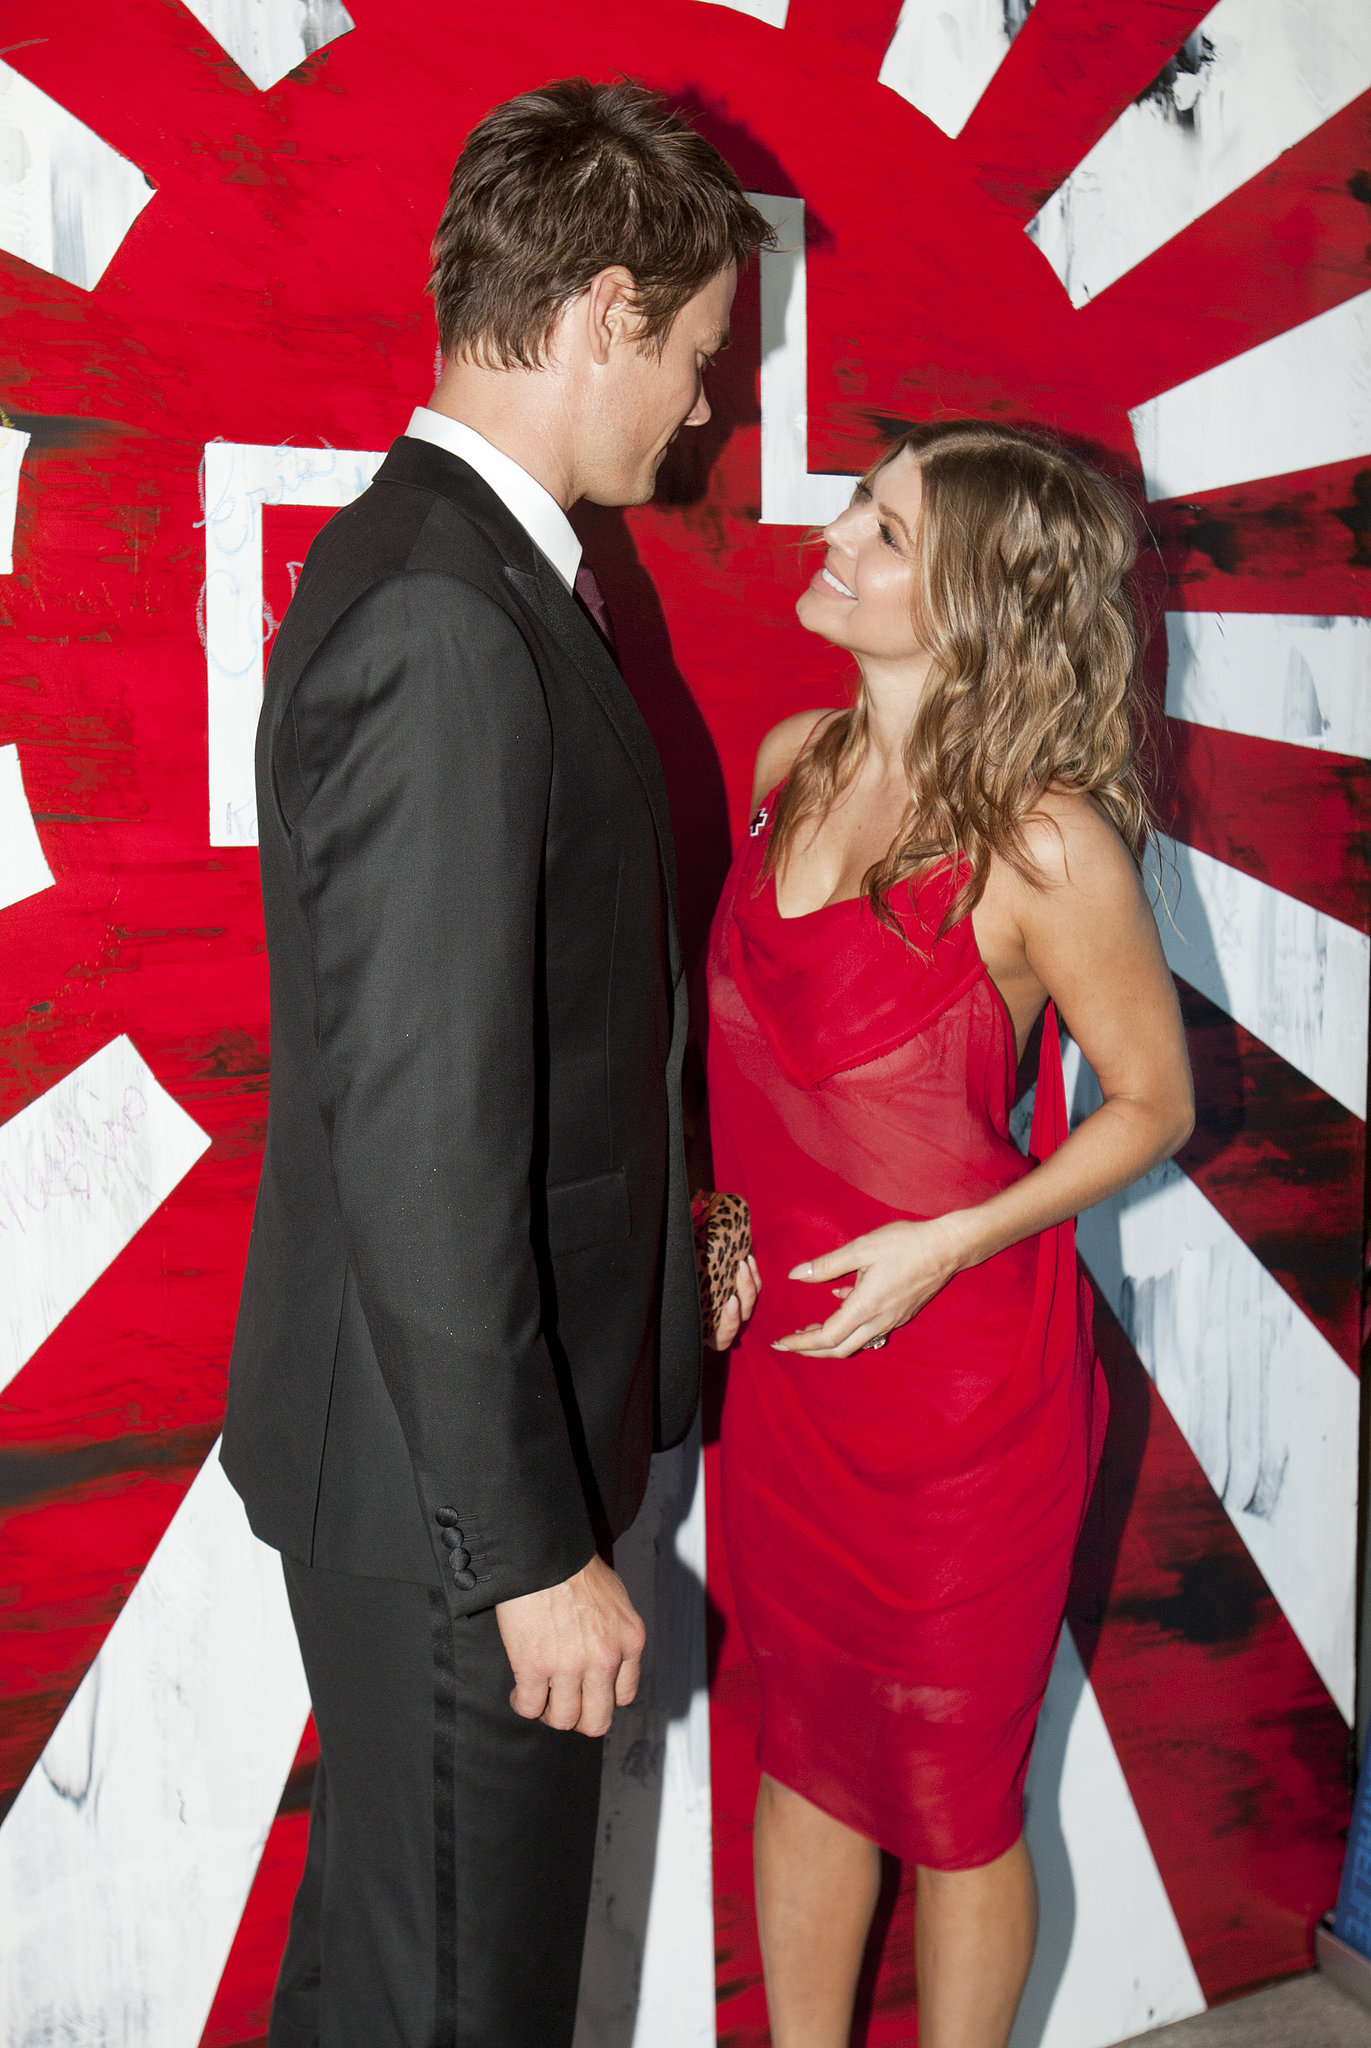 Josh Duhamel and Fergie attended the American Red Cross Red Tie Affair event in LA in April 2009.